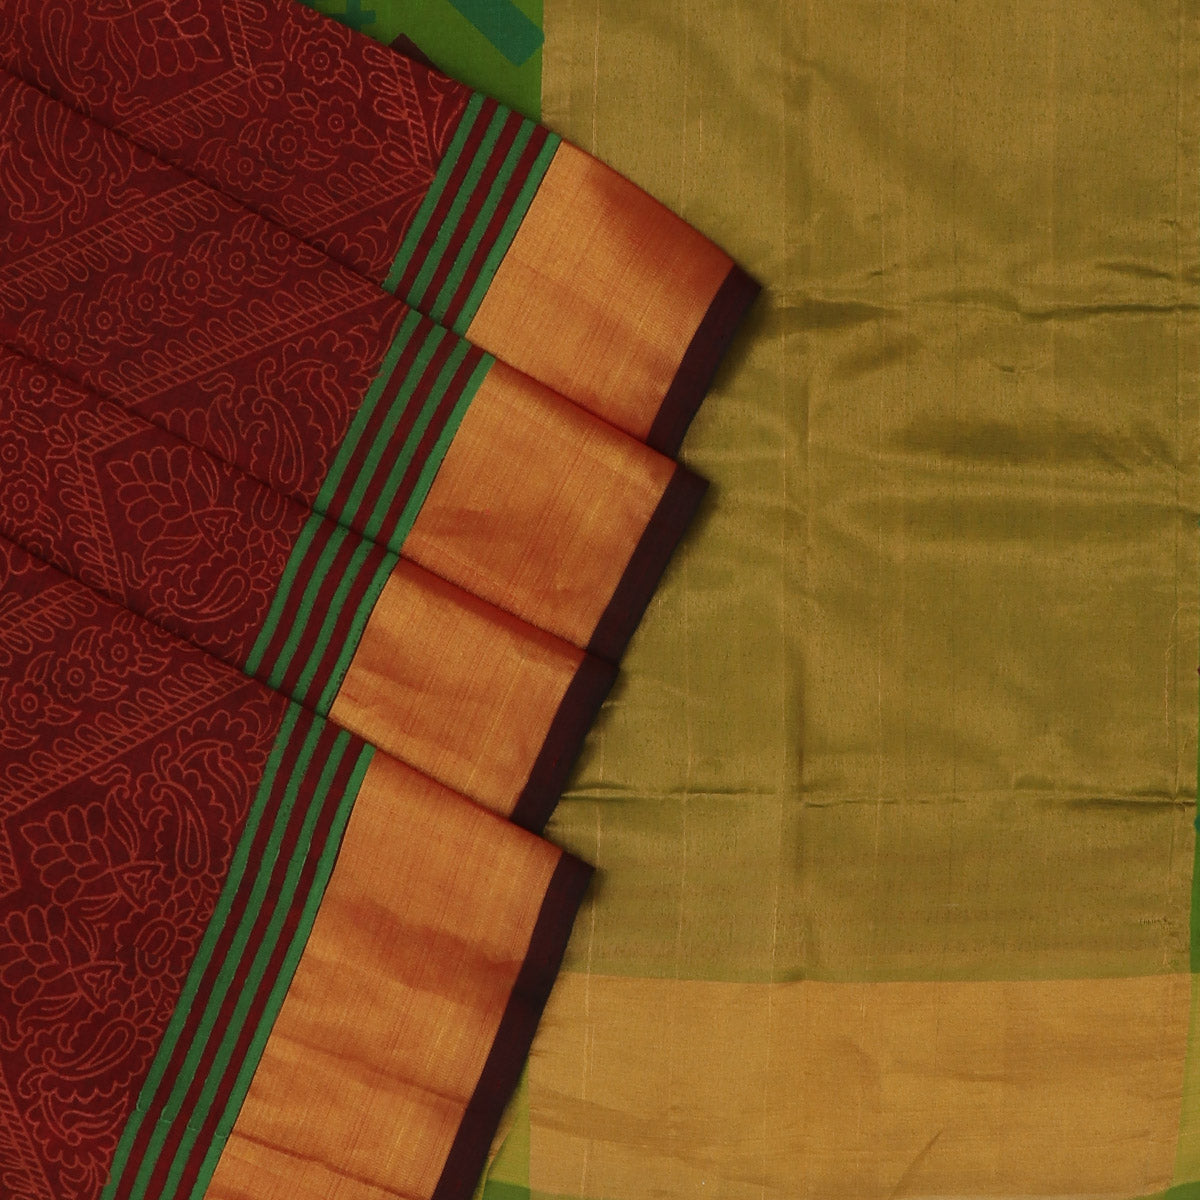 Printed Silk Cotton Saree - Maroon and Green with Simple border